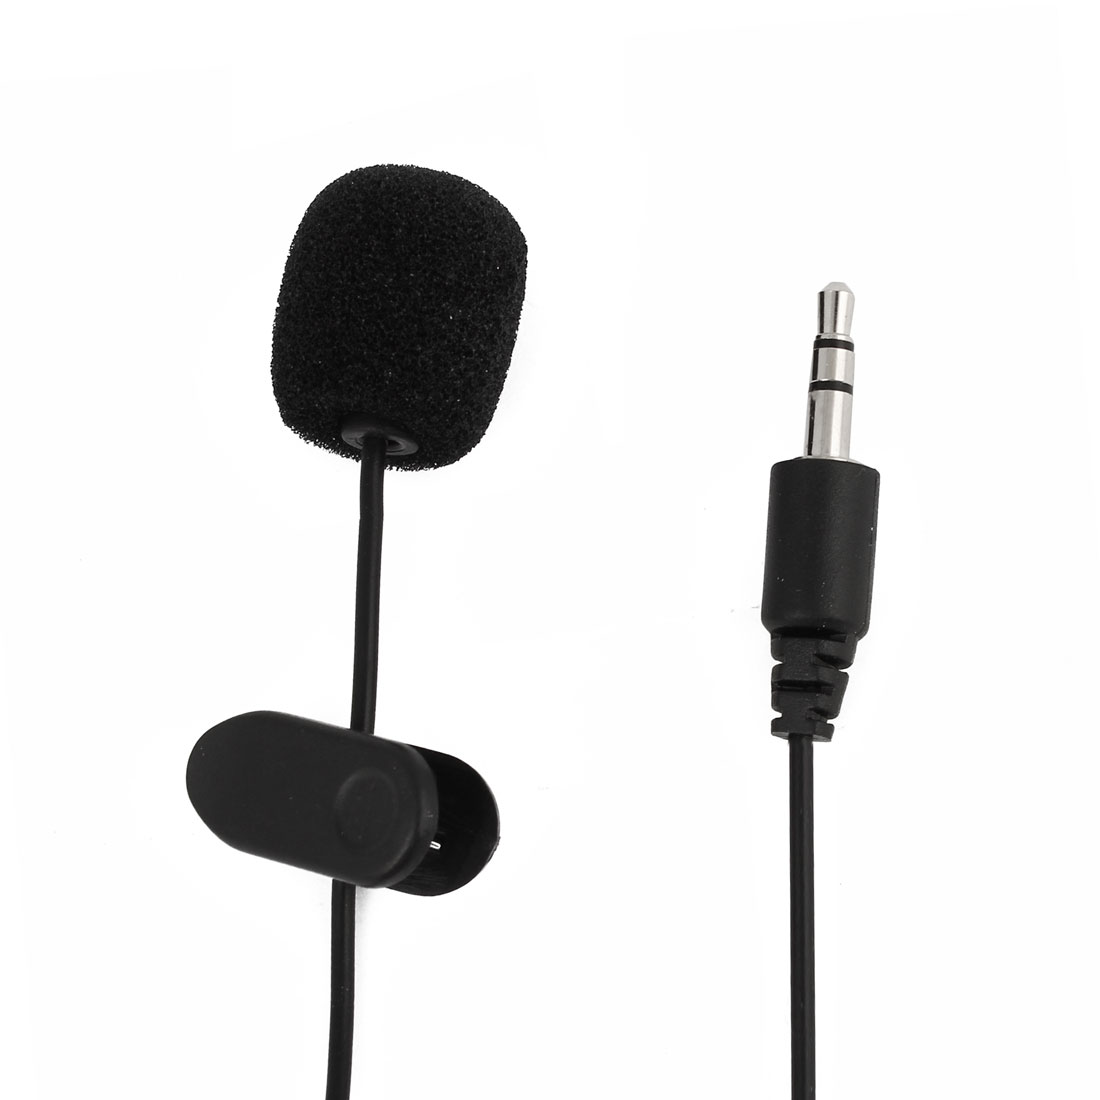 Portable Flexible 3.5mm Connector Online Chatting Conference Microphone 1.5m Cable Black